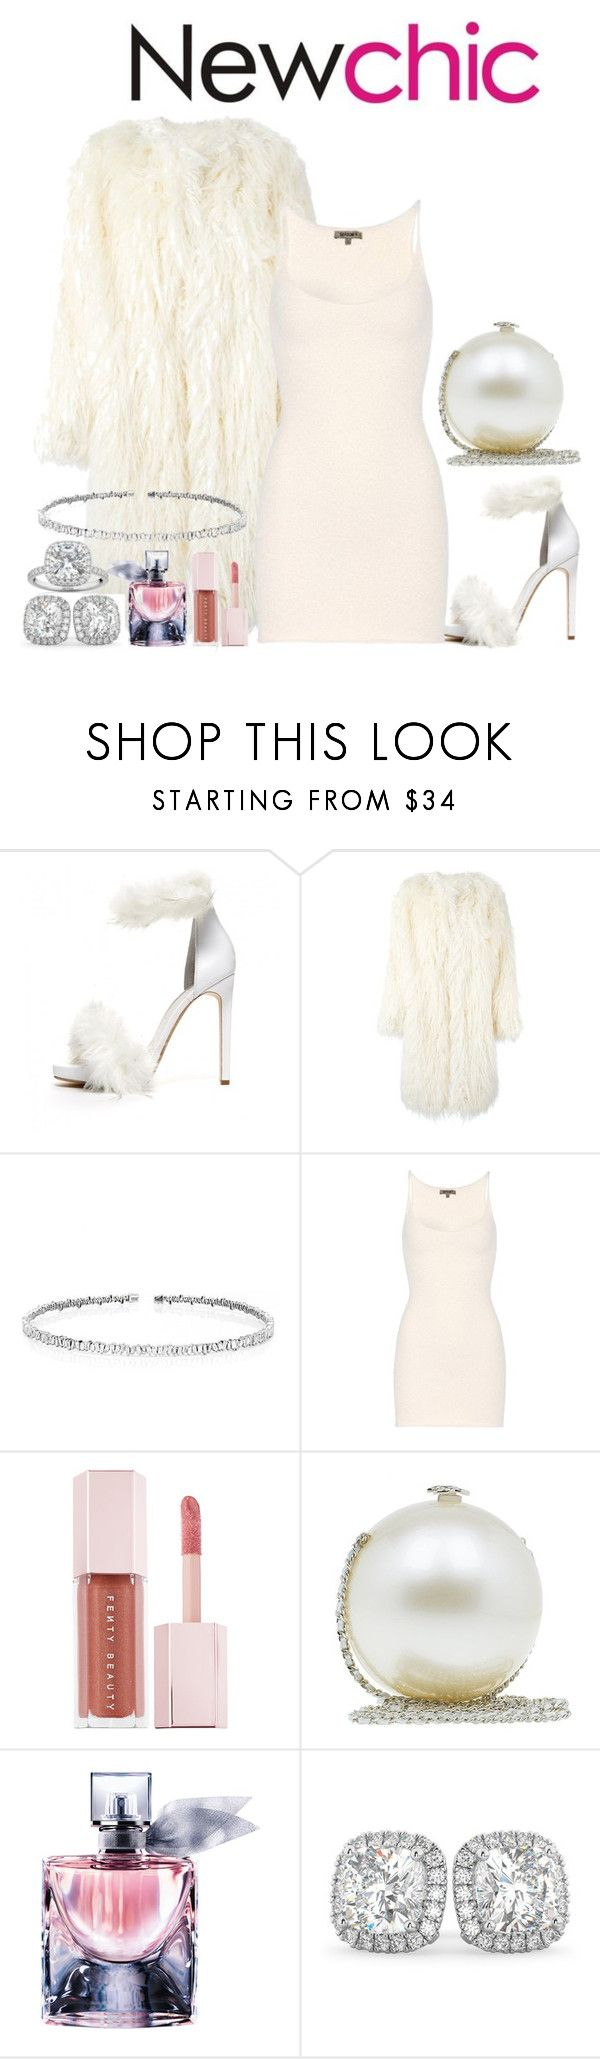 """Yeezy Fashion Show"" by rarah-chan on Polyvore featuring moda, Jeffrey Campbell, DKNY, Suzanne Kalan, Yeezy by Kanye West, Puma, Chanel, Lancôme e Allurez"